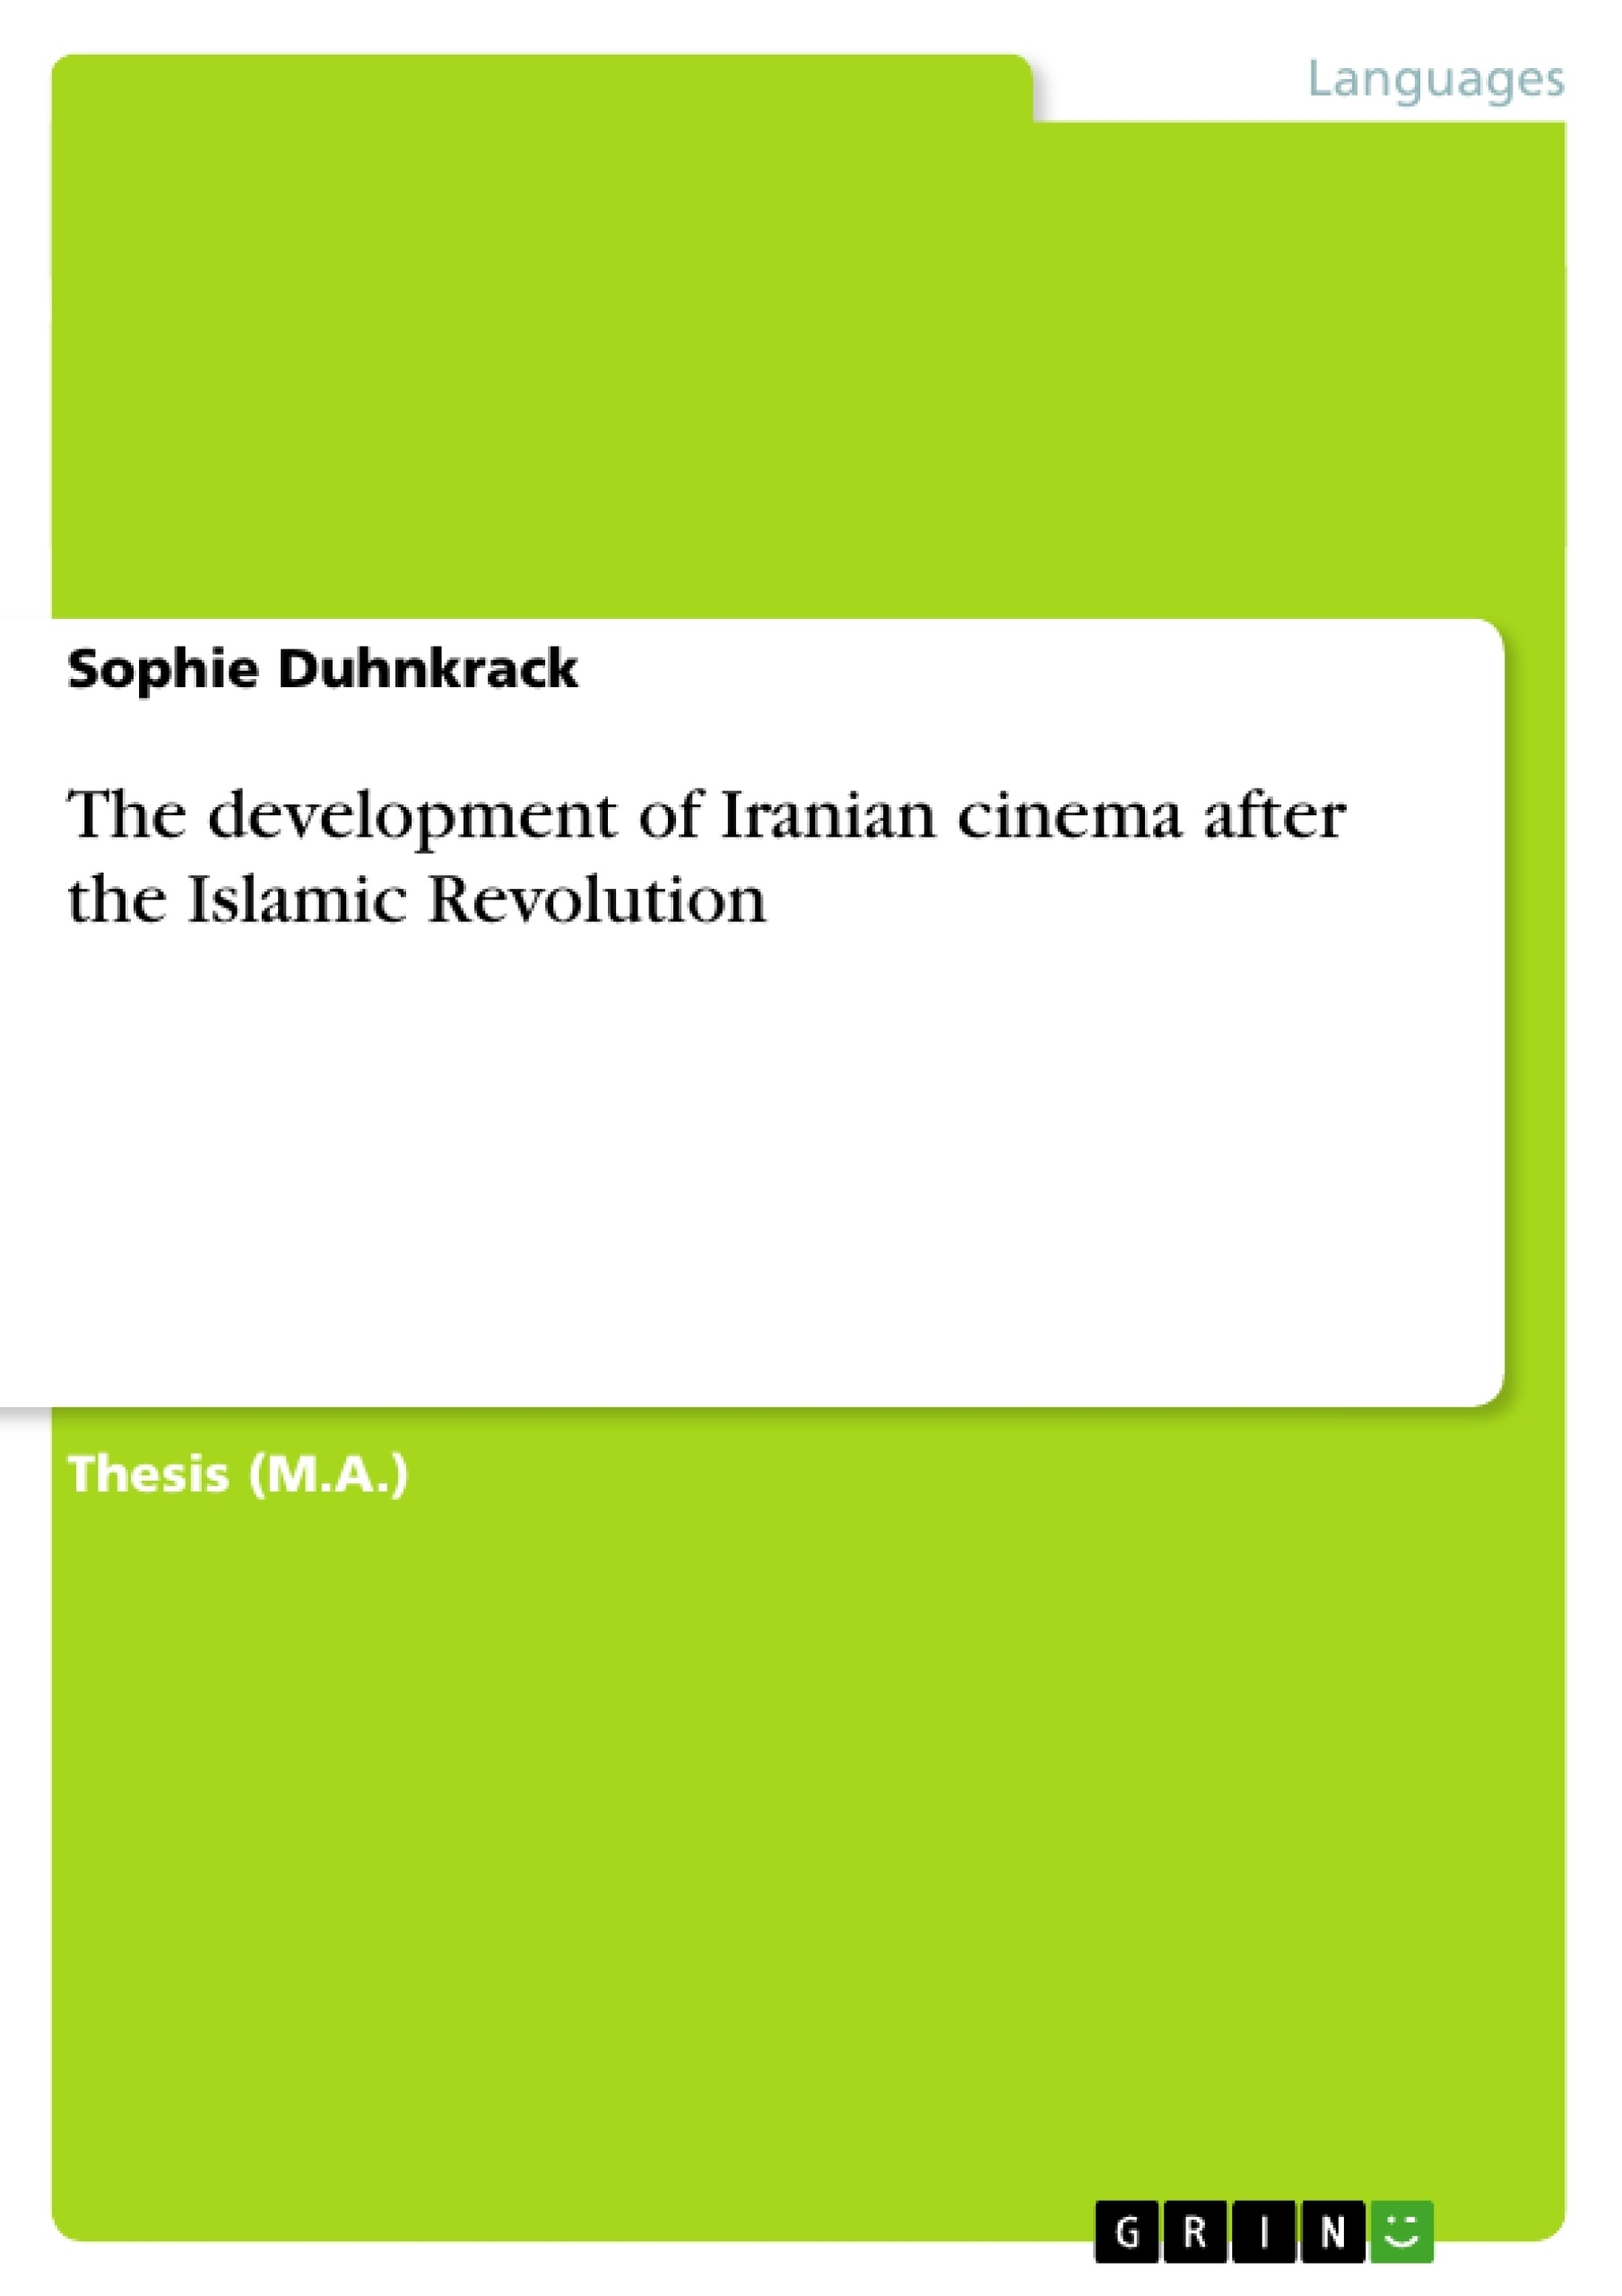 the development of ian cinema after the islamic revolution the development of ian cinema after the islamic revolution publish your master s thesis bachelor s thesis essay or term paper